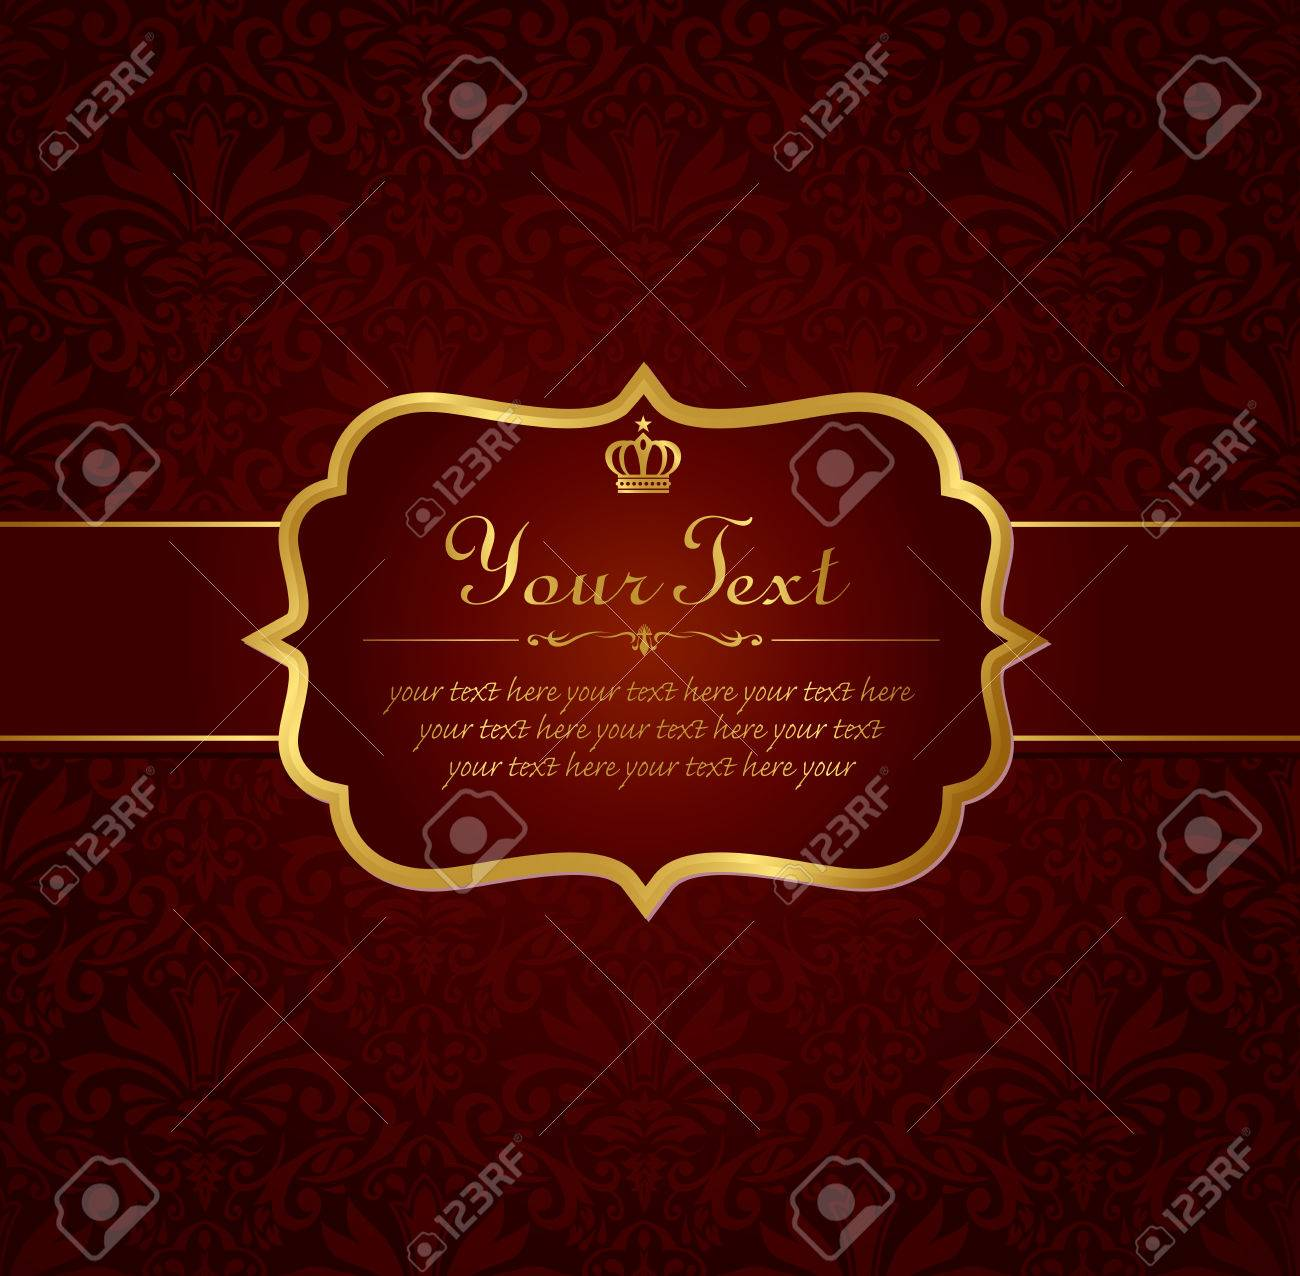 Invitation vintage label vector frame royalty free cliparts invitation vintage label vector frame stock vector 29138677 stopboris Image collections